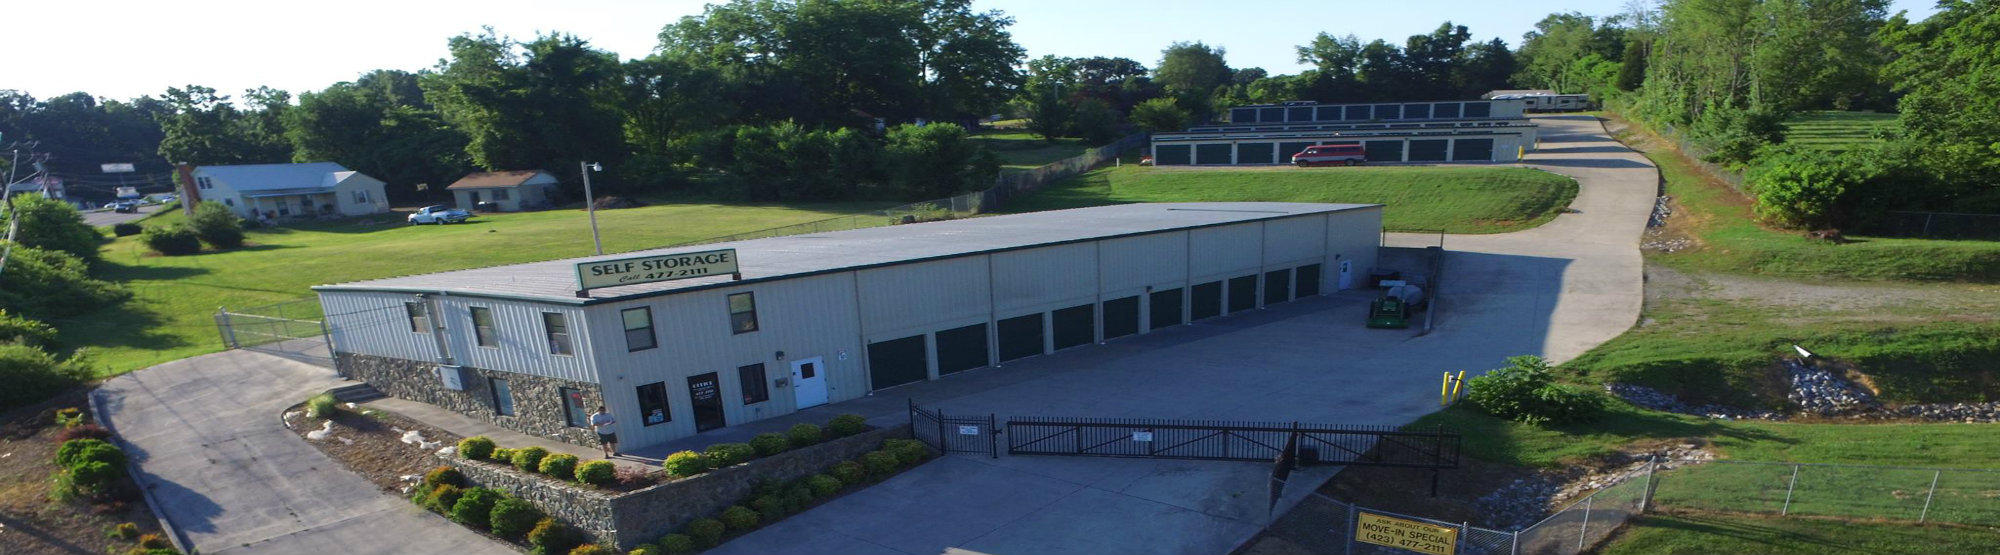 Self Storage Facilities in Johnson City, TN